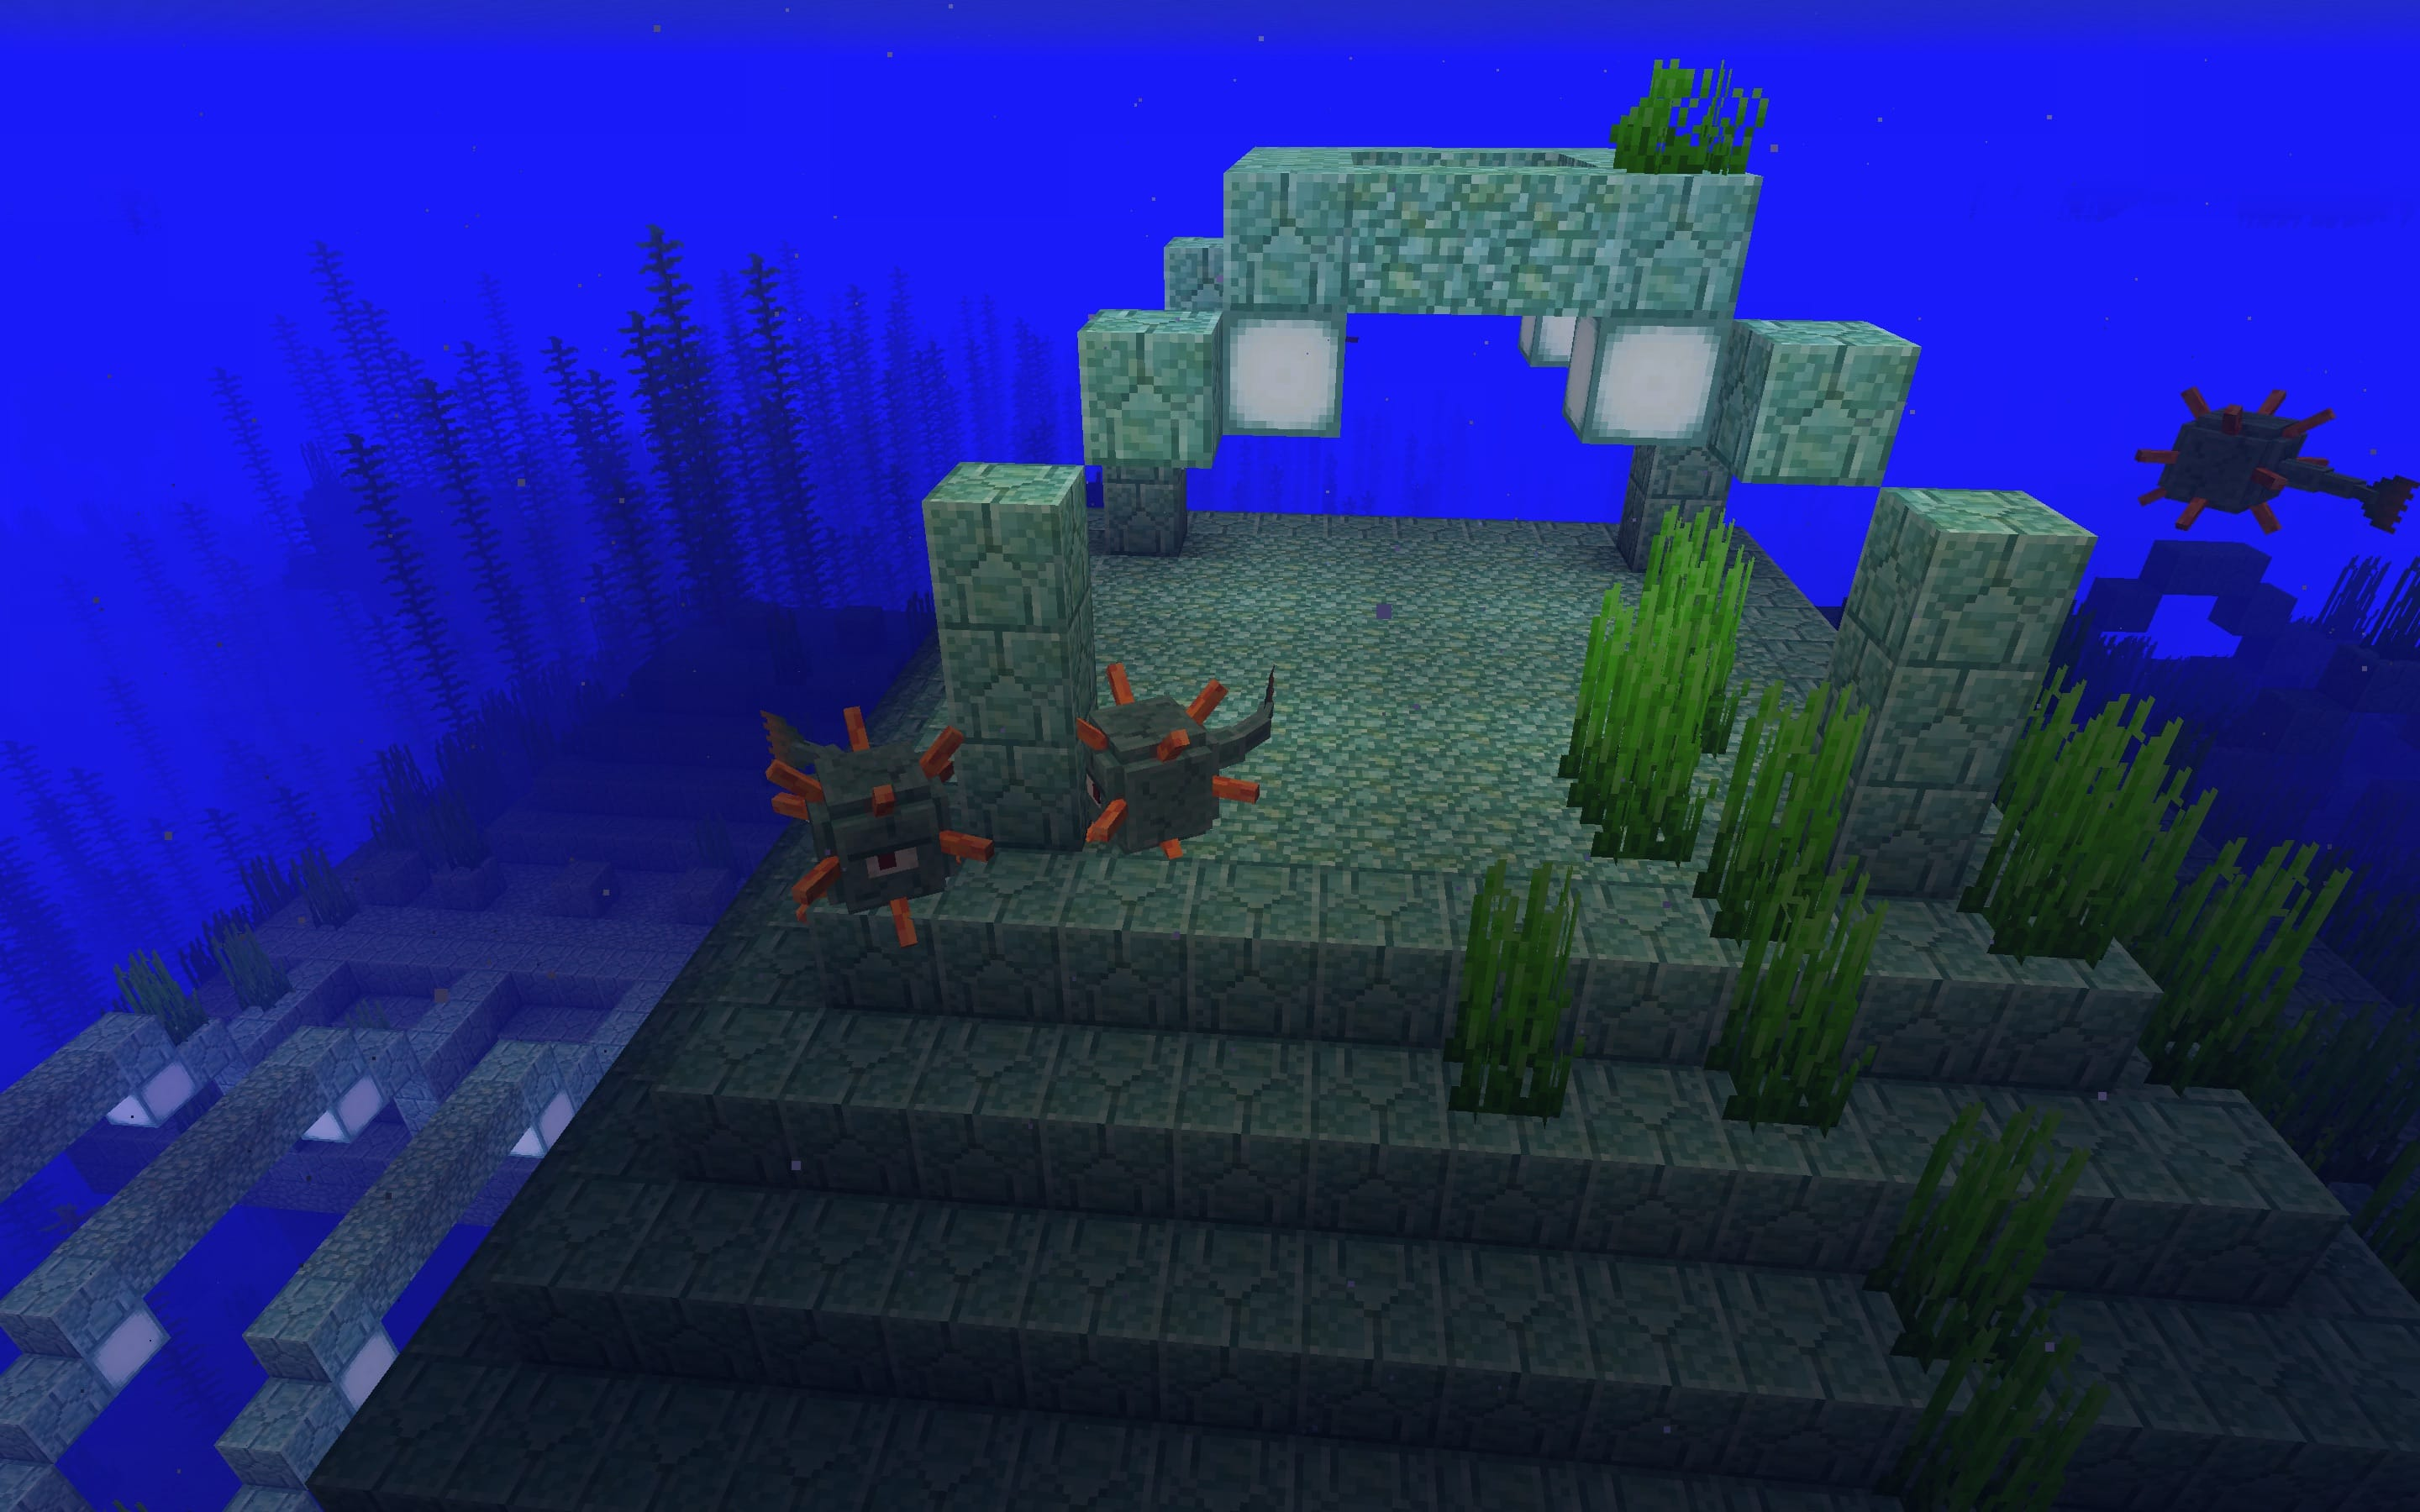 Minecraft Ocean Monument Seeds - Minecraft Seed HQ